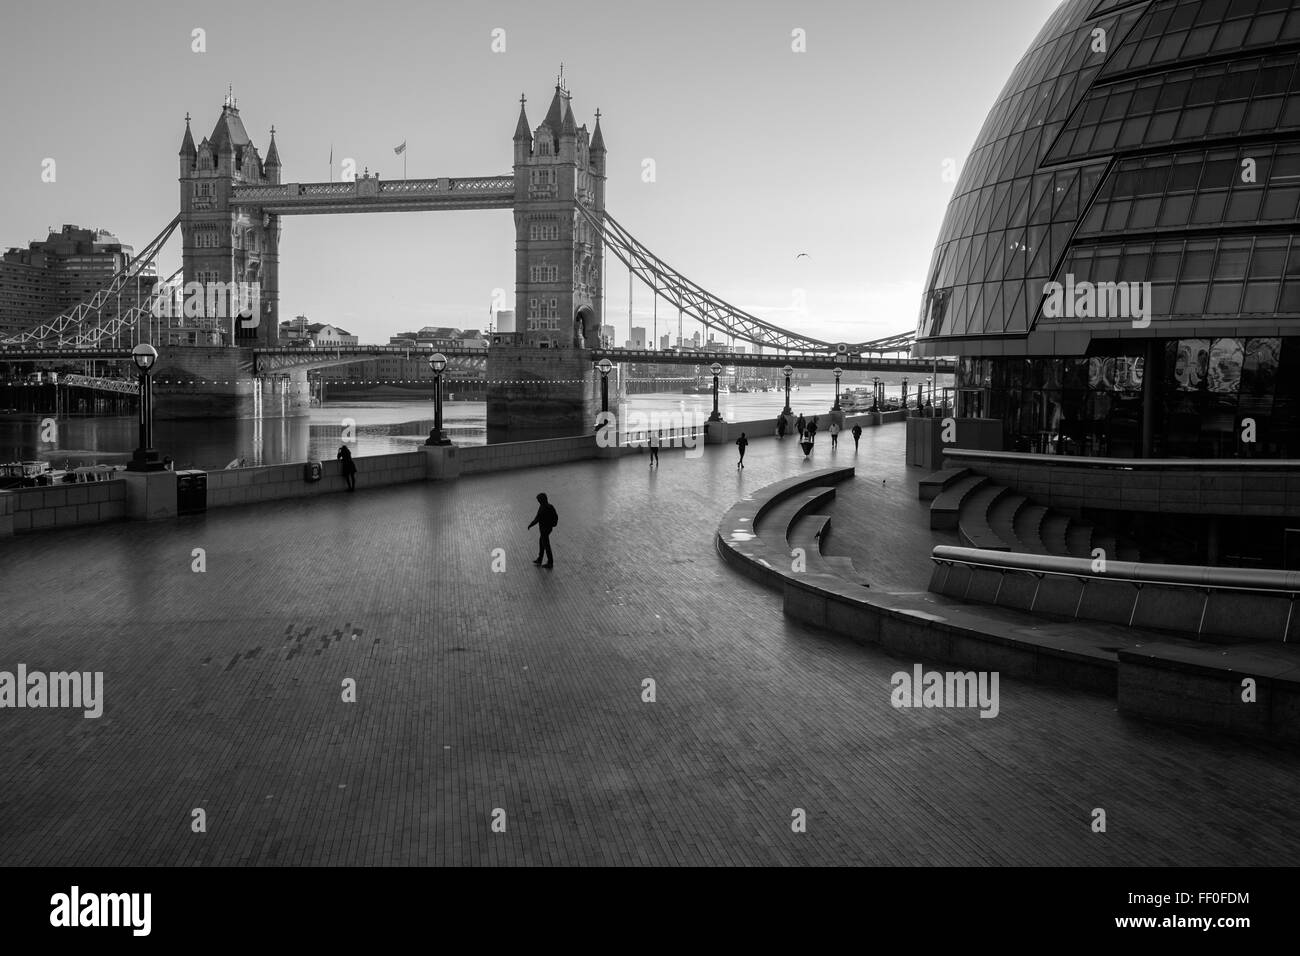 A beautiful black and white photo of southbank along the Thames river on a lovely Sunday morning in February. - Stock Image